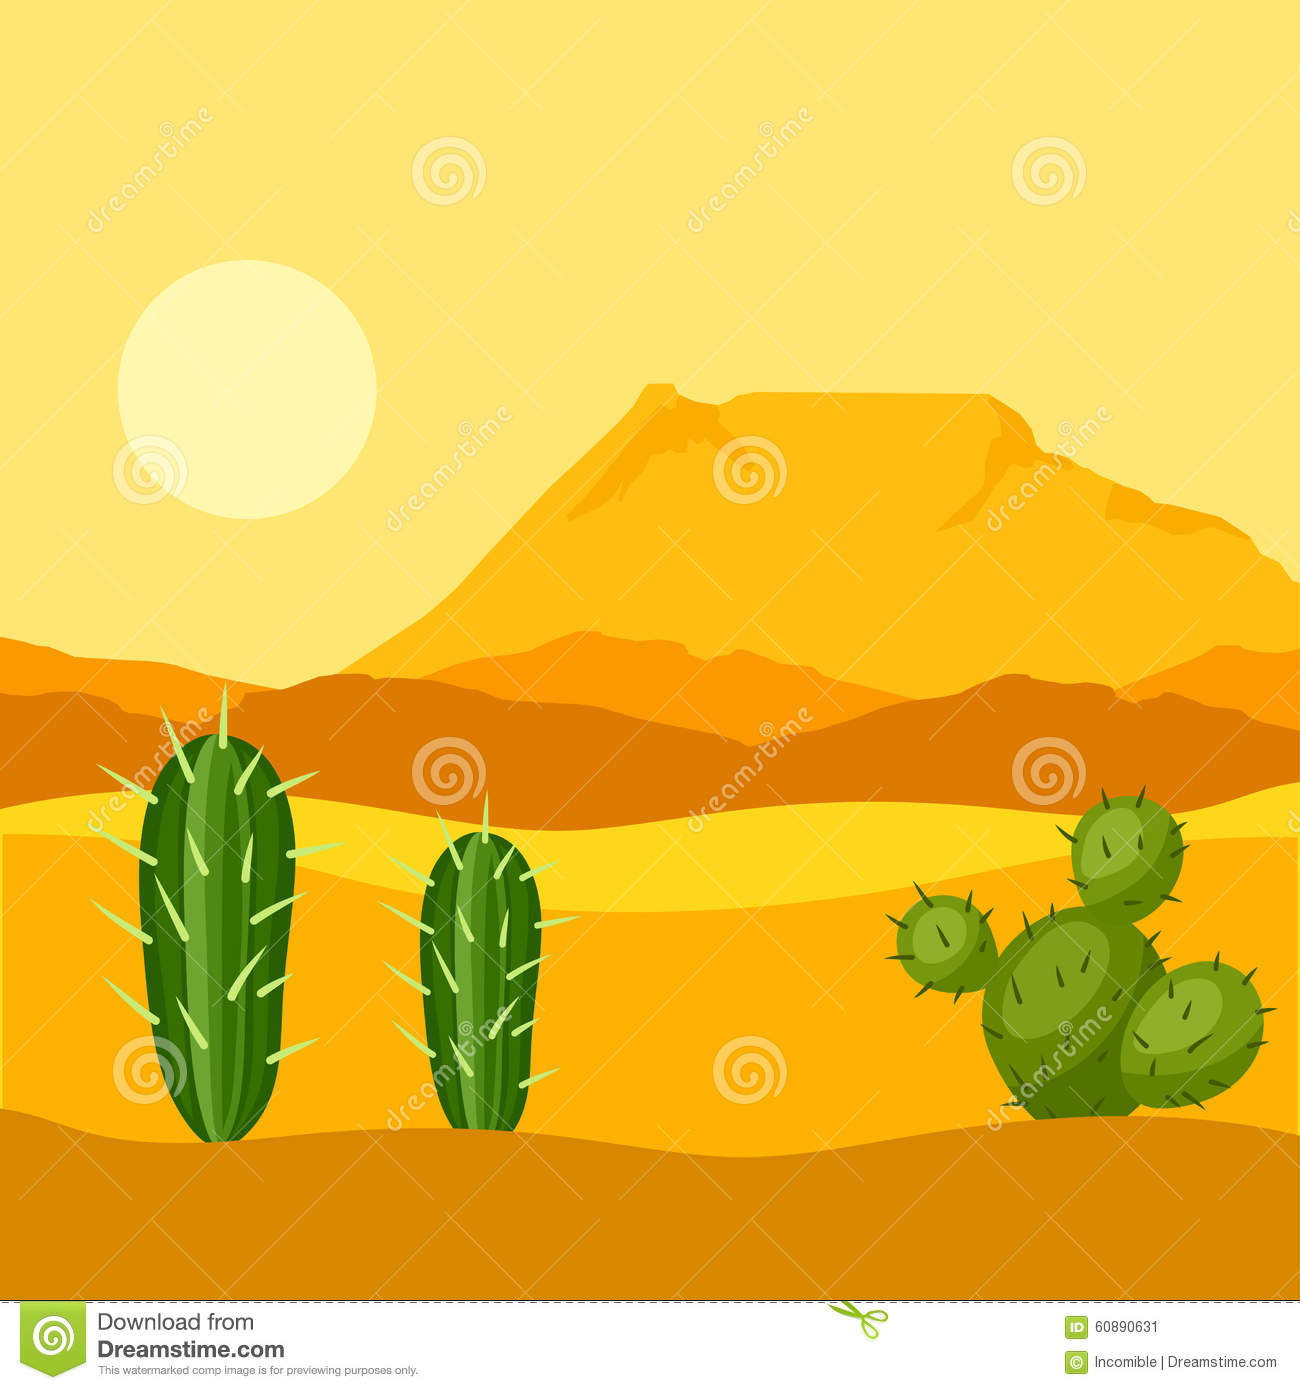 Illustration of mexican desert with cactuses and